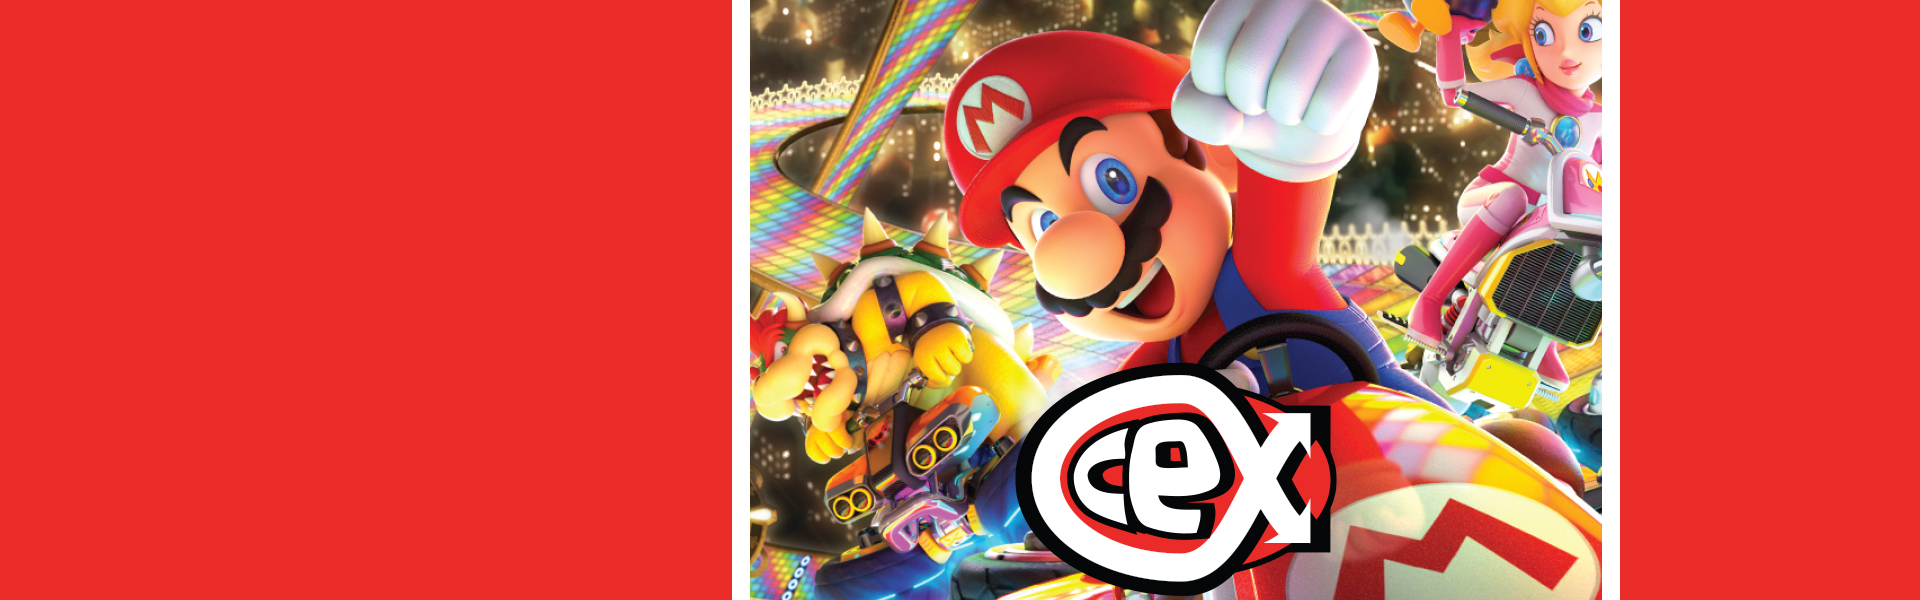 Mario Kart 8 Competition - Splash Banner